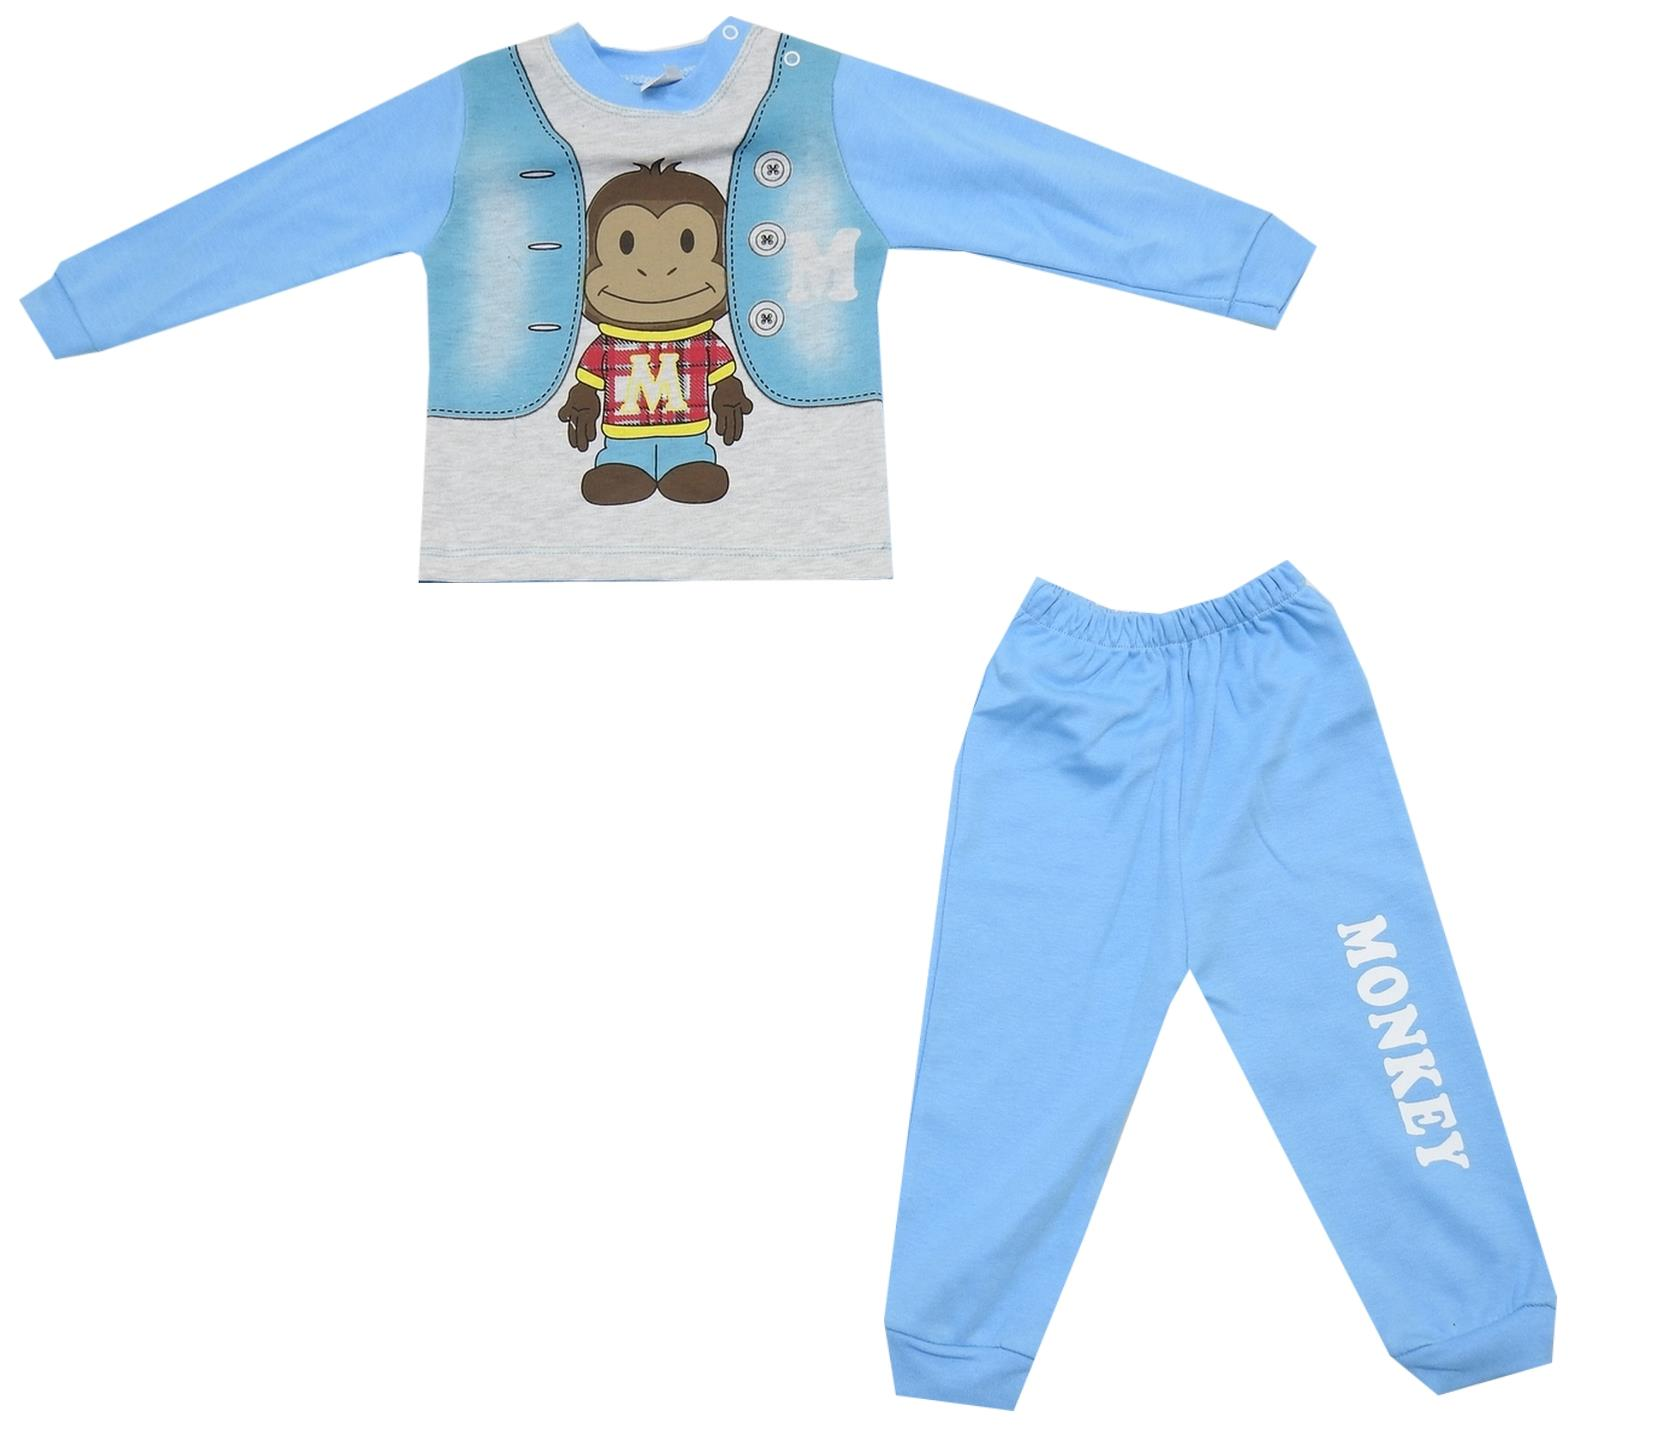 MONKEY PRINTED DESIGN FOR BOY (9-12-18 MONTH)